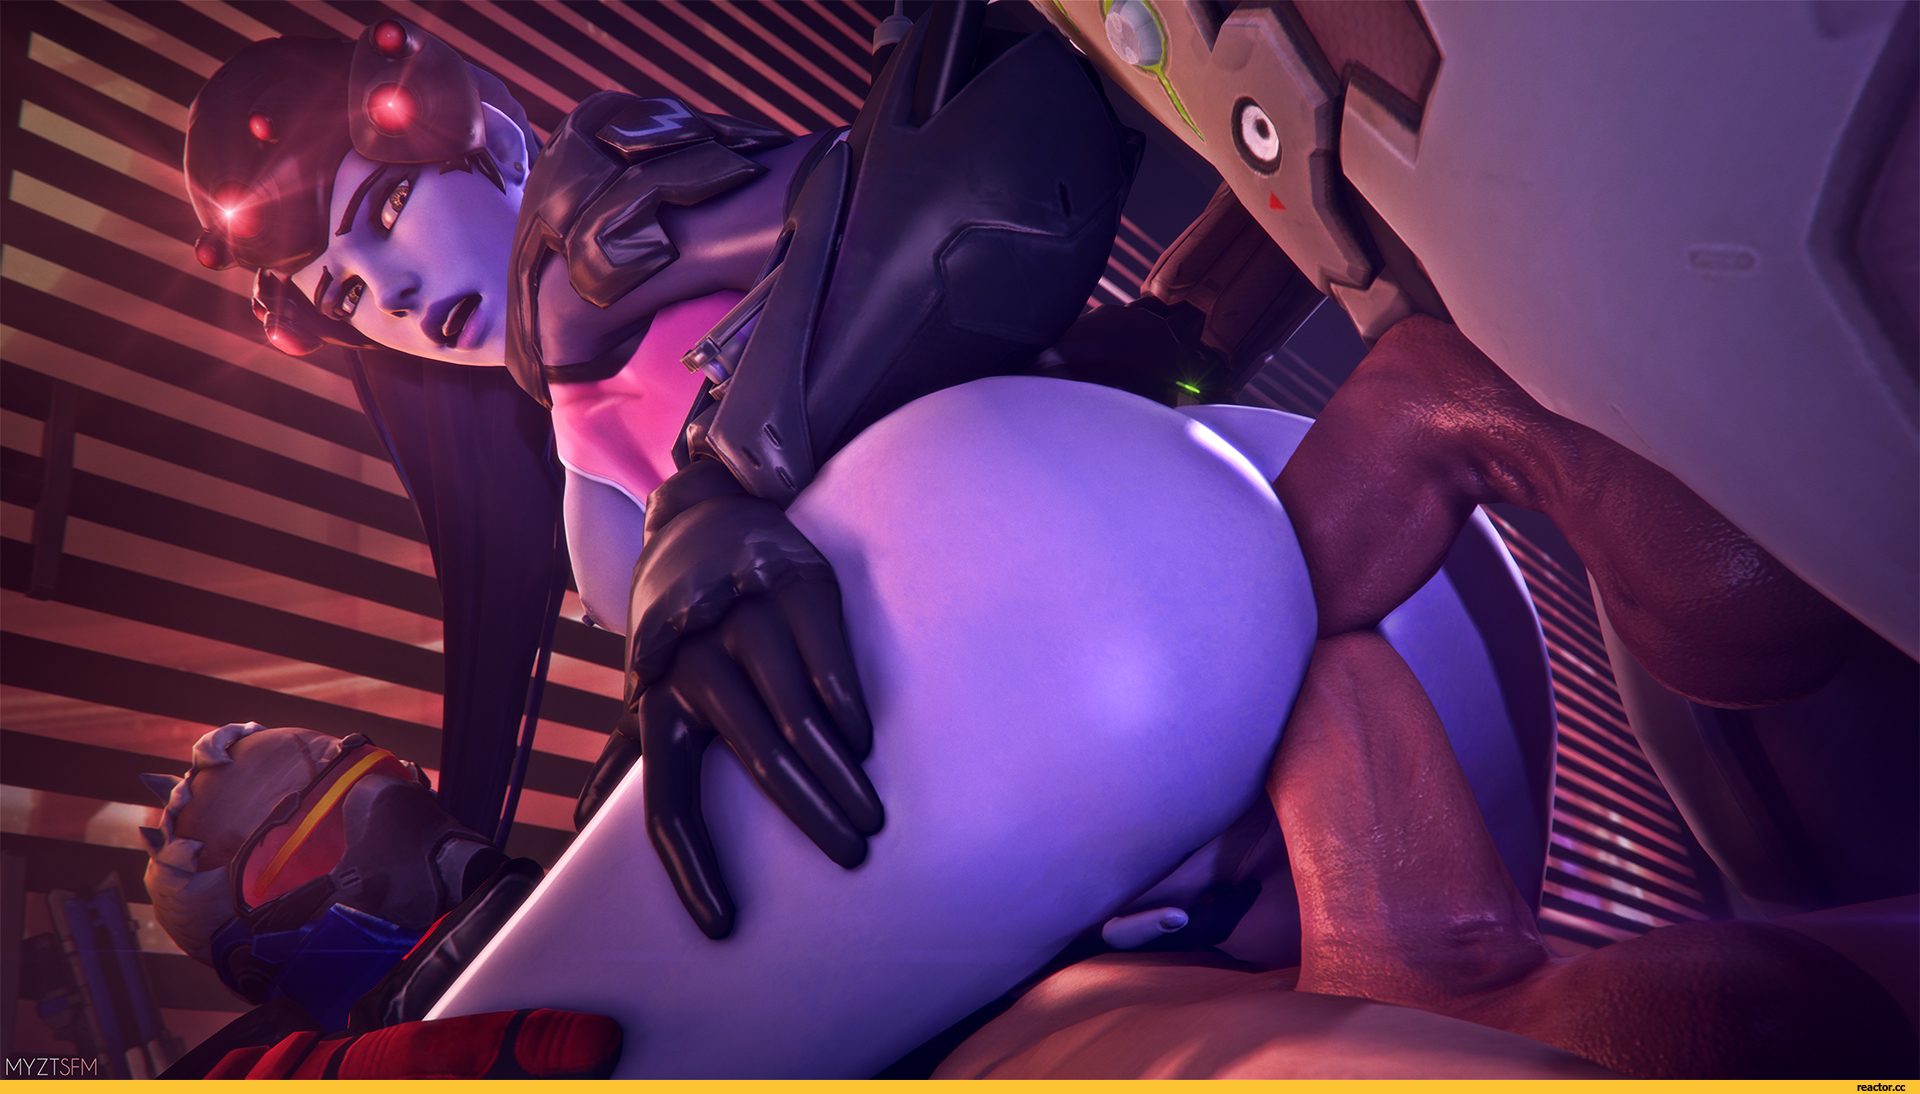 r34--overwatch-porn-Widowmaker-2959759